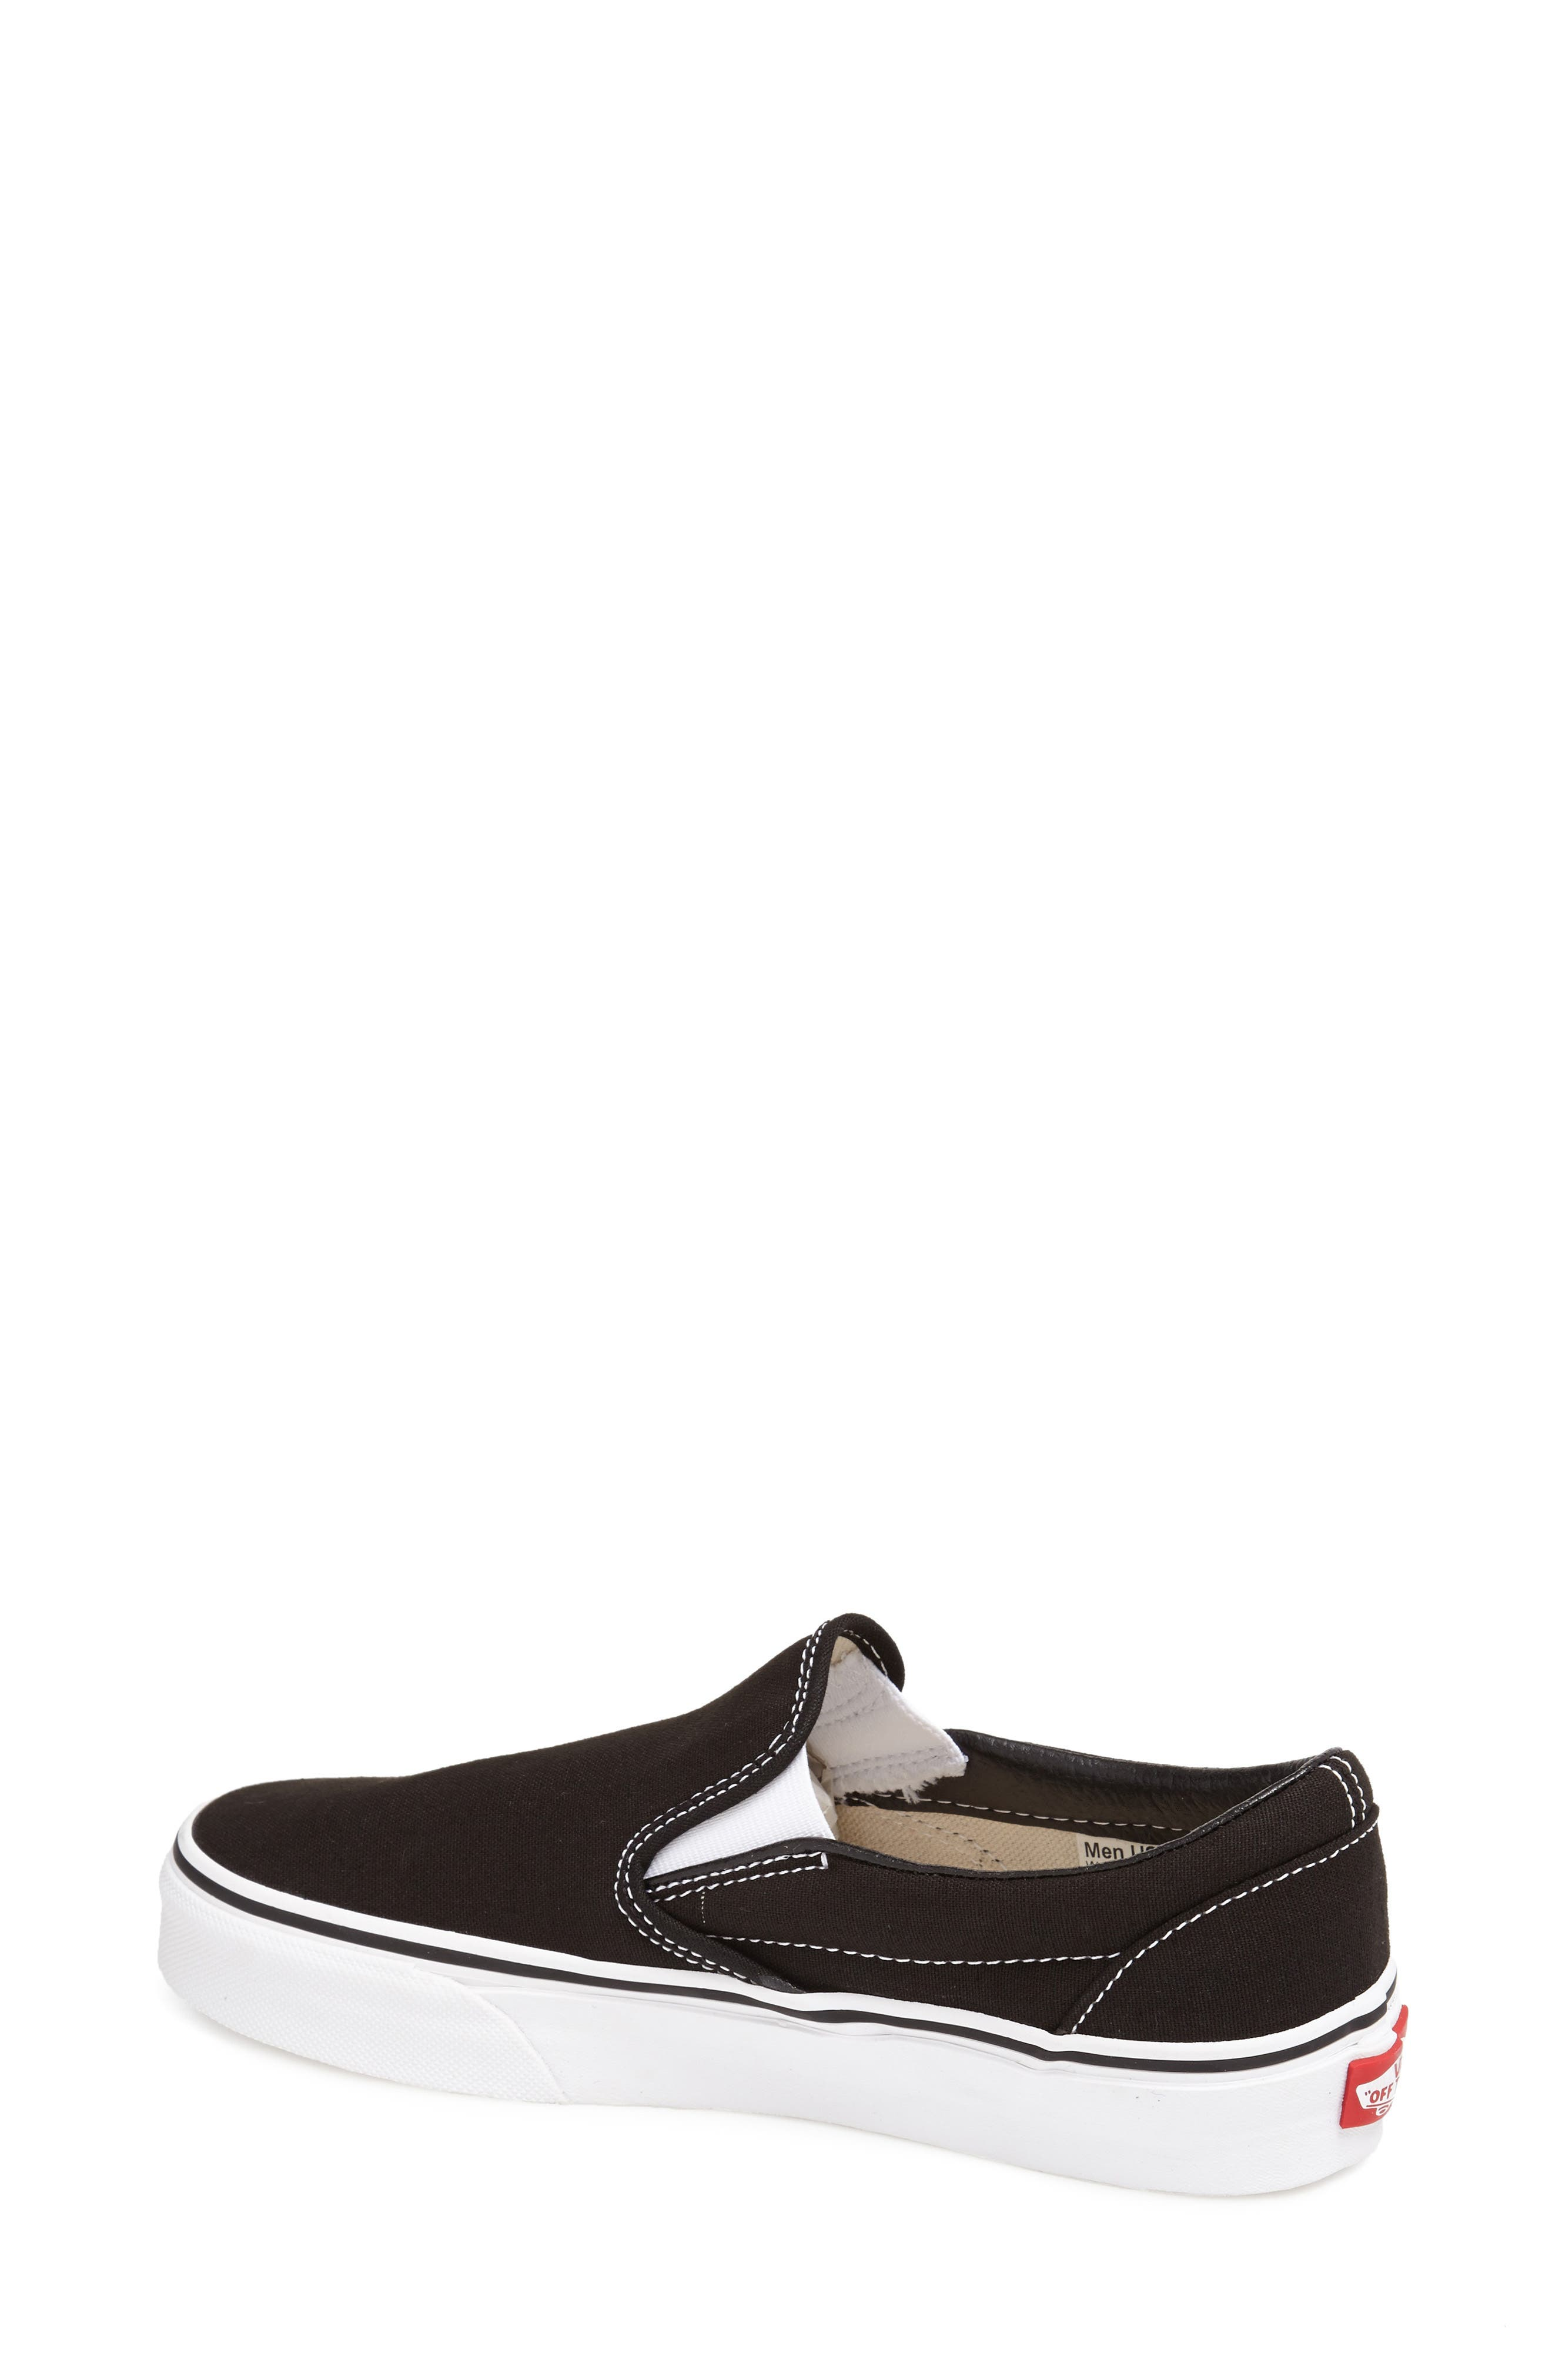 Classic Slip-On Sneaker,                             Alternate thumbnail 2, color,                             BLACK